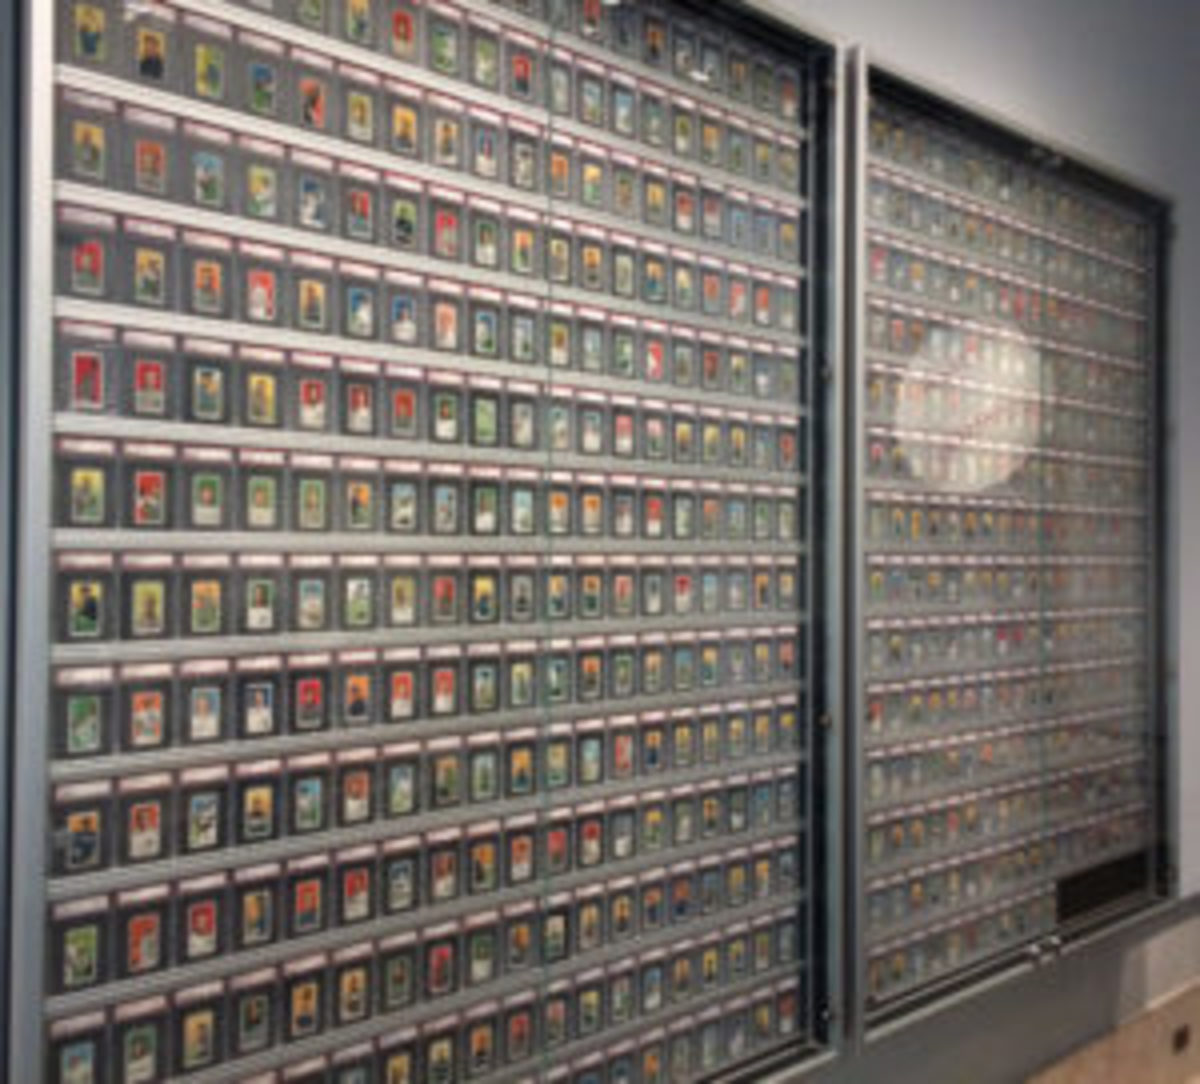 The T206 baseball card display at the Detroit Institute of Arts.